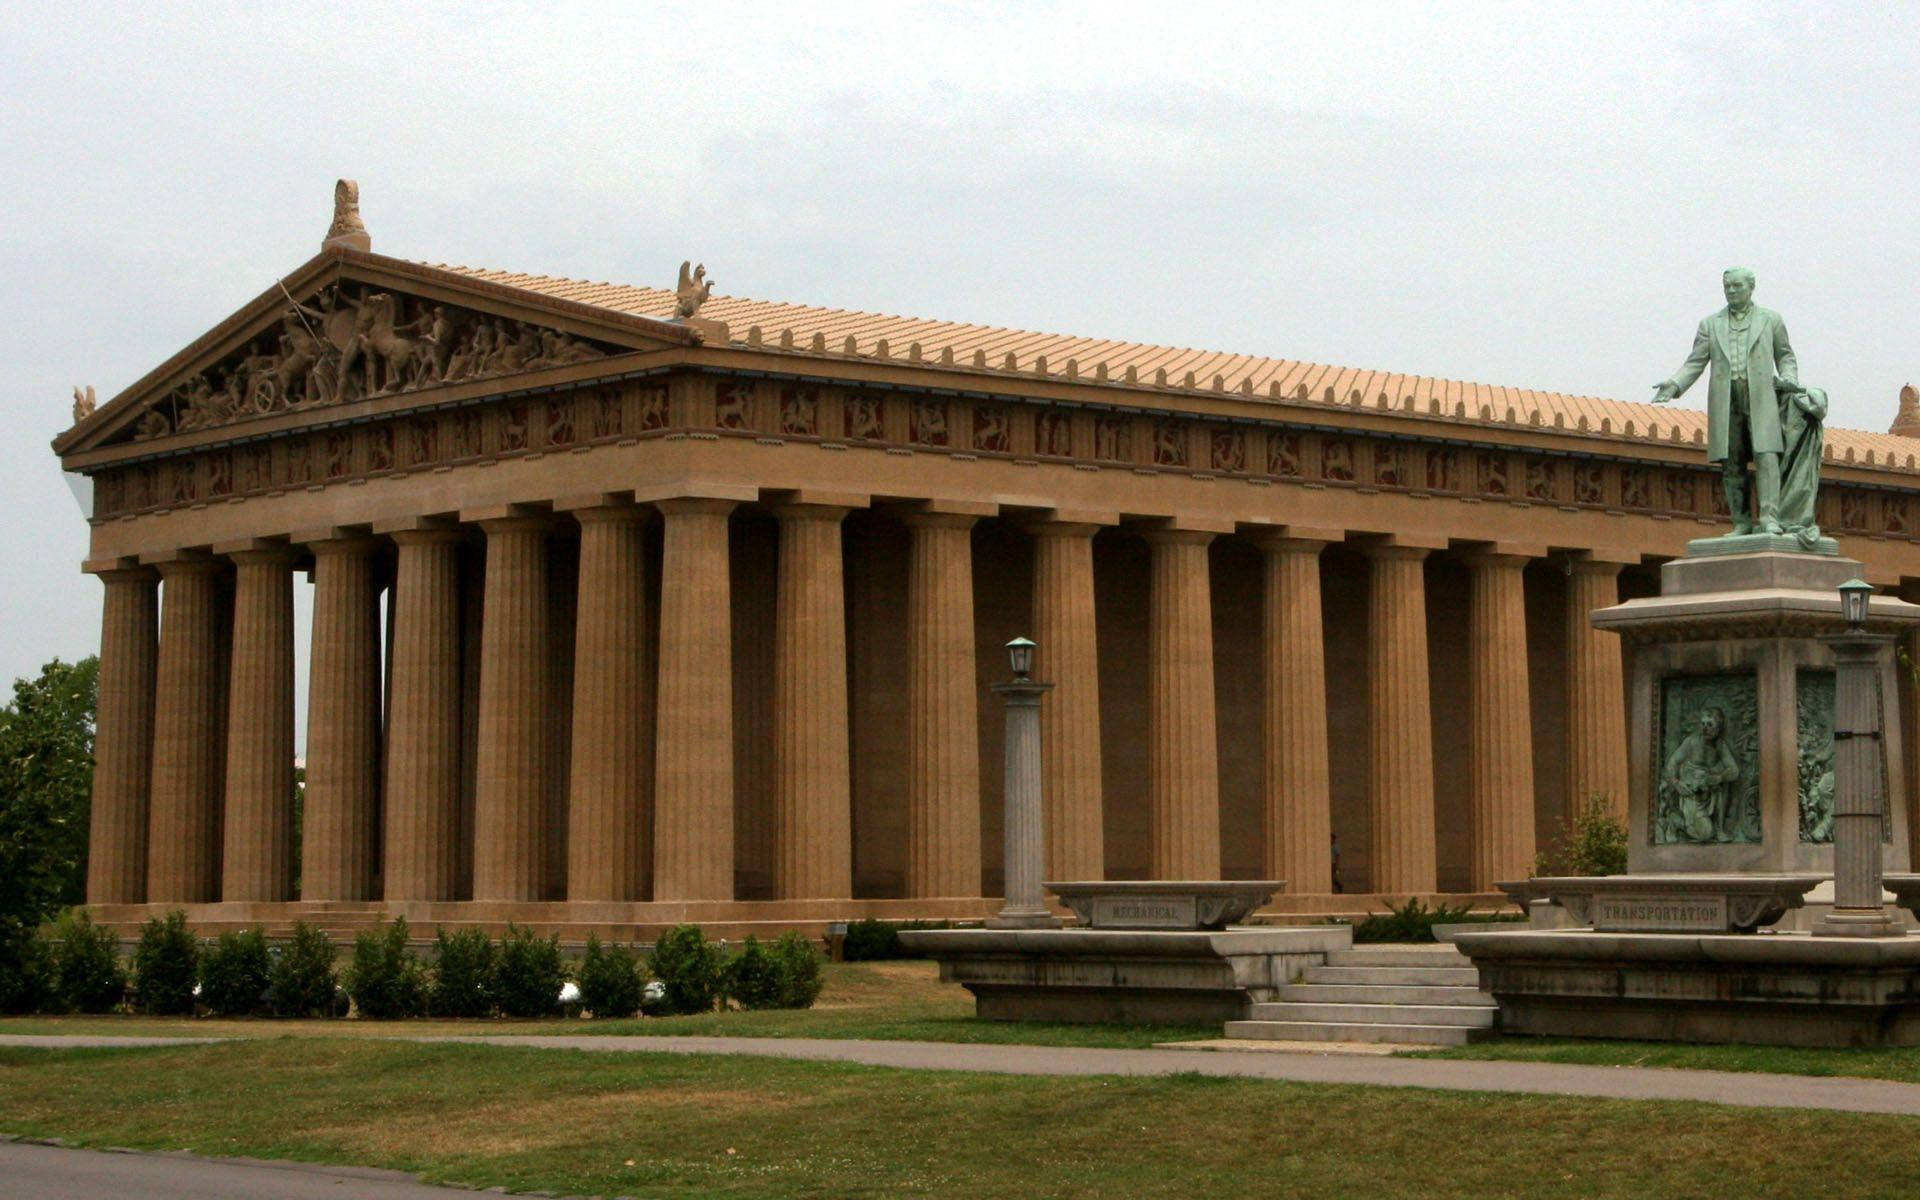 Nashville Parthenon From South